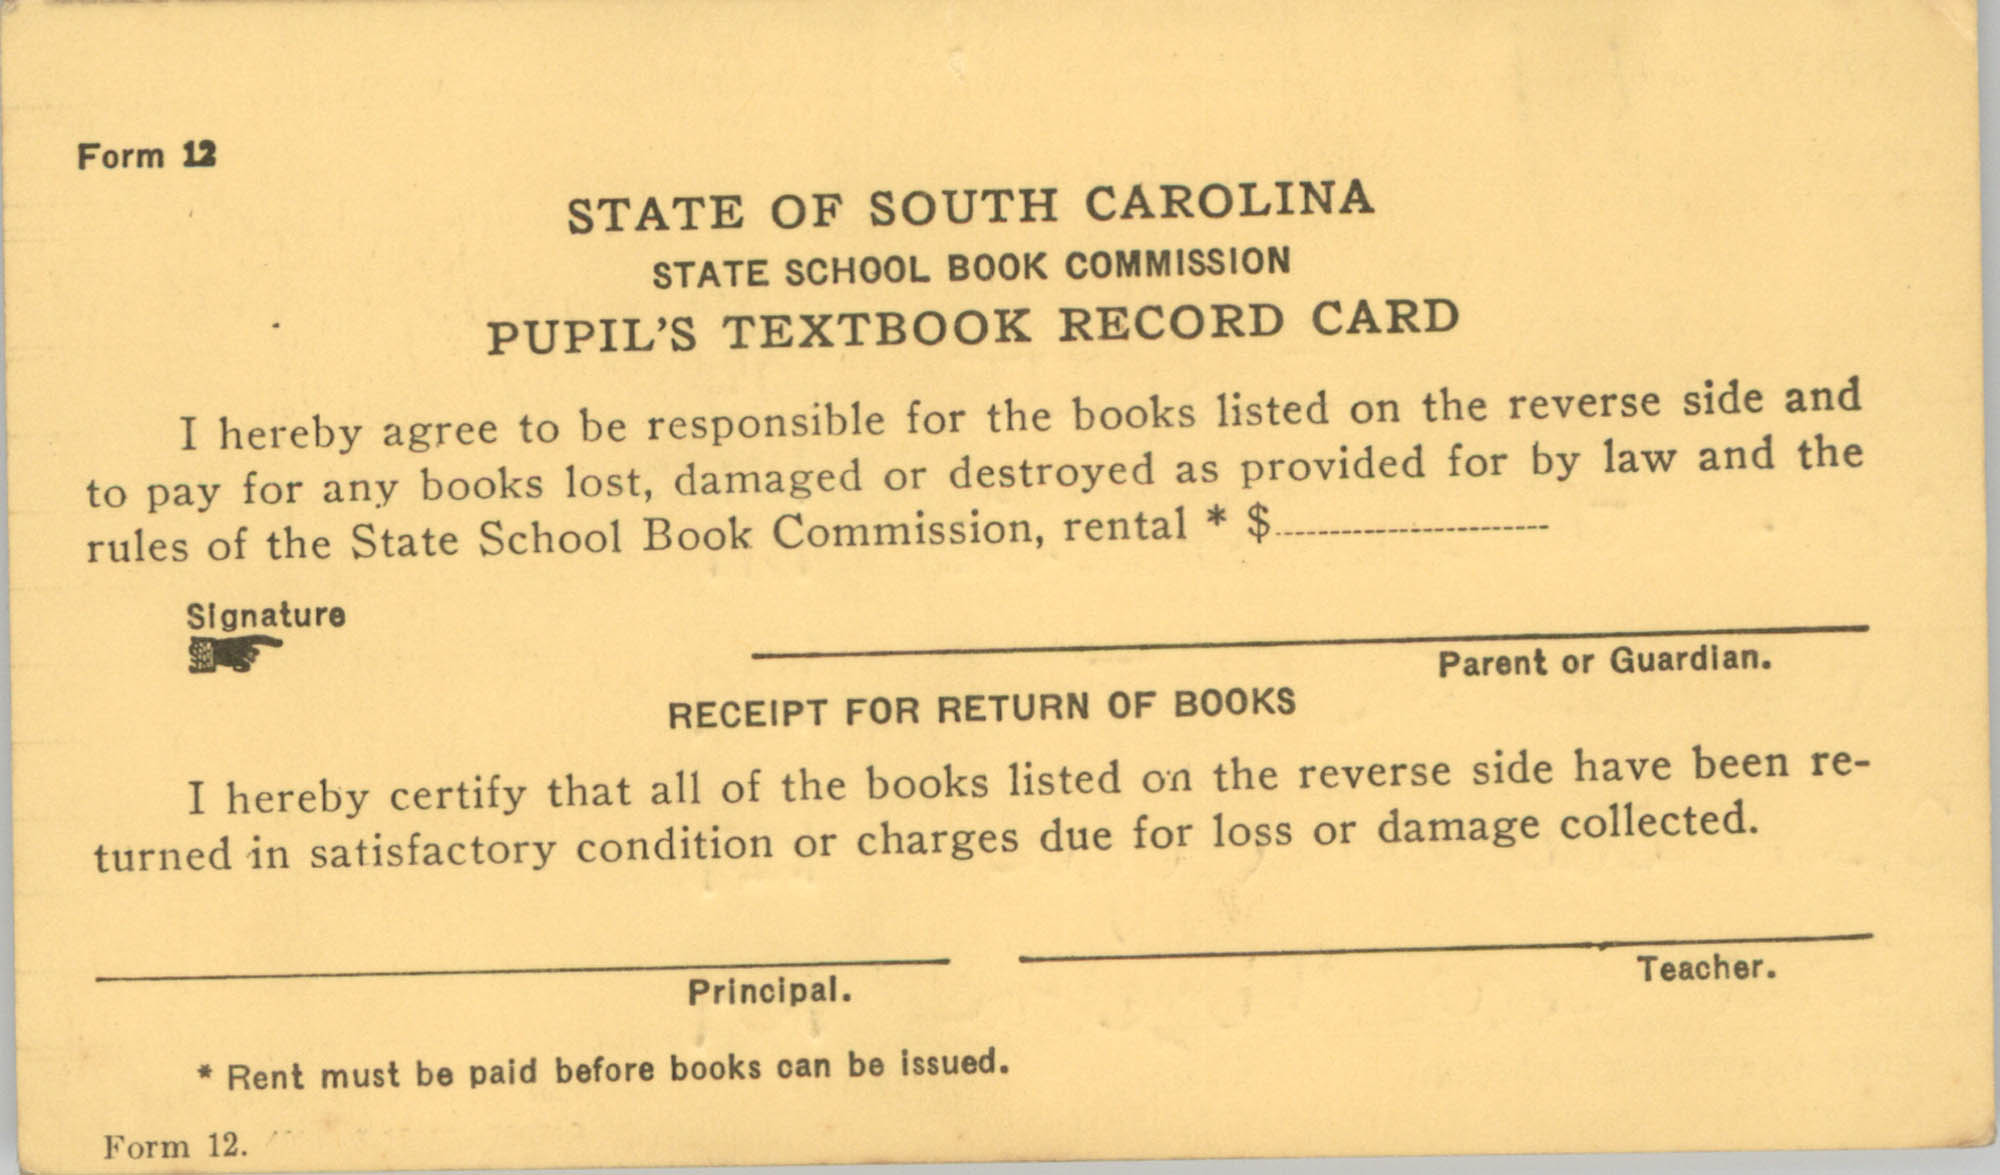 State of South Carolina State School Book Commission Pupil's Textbook Record Cards, Front Card 2